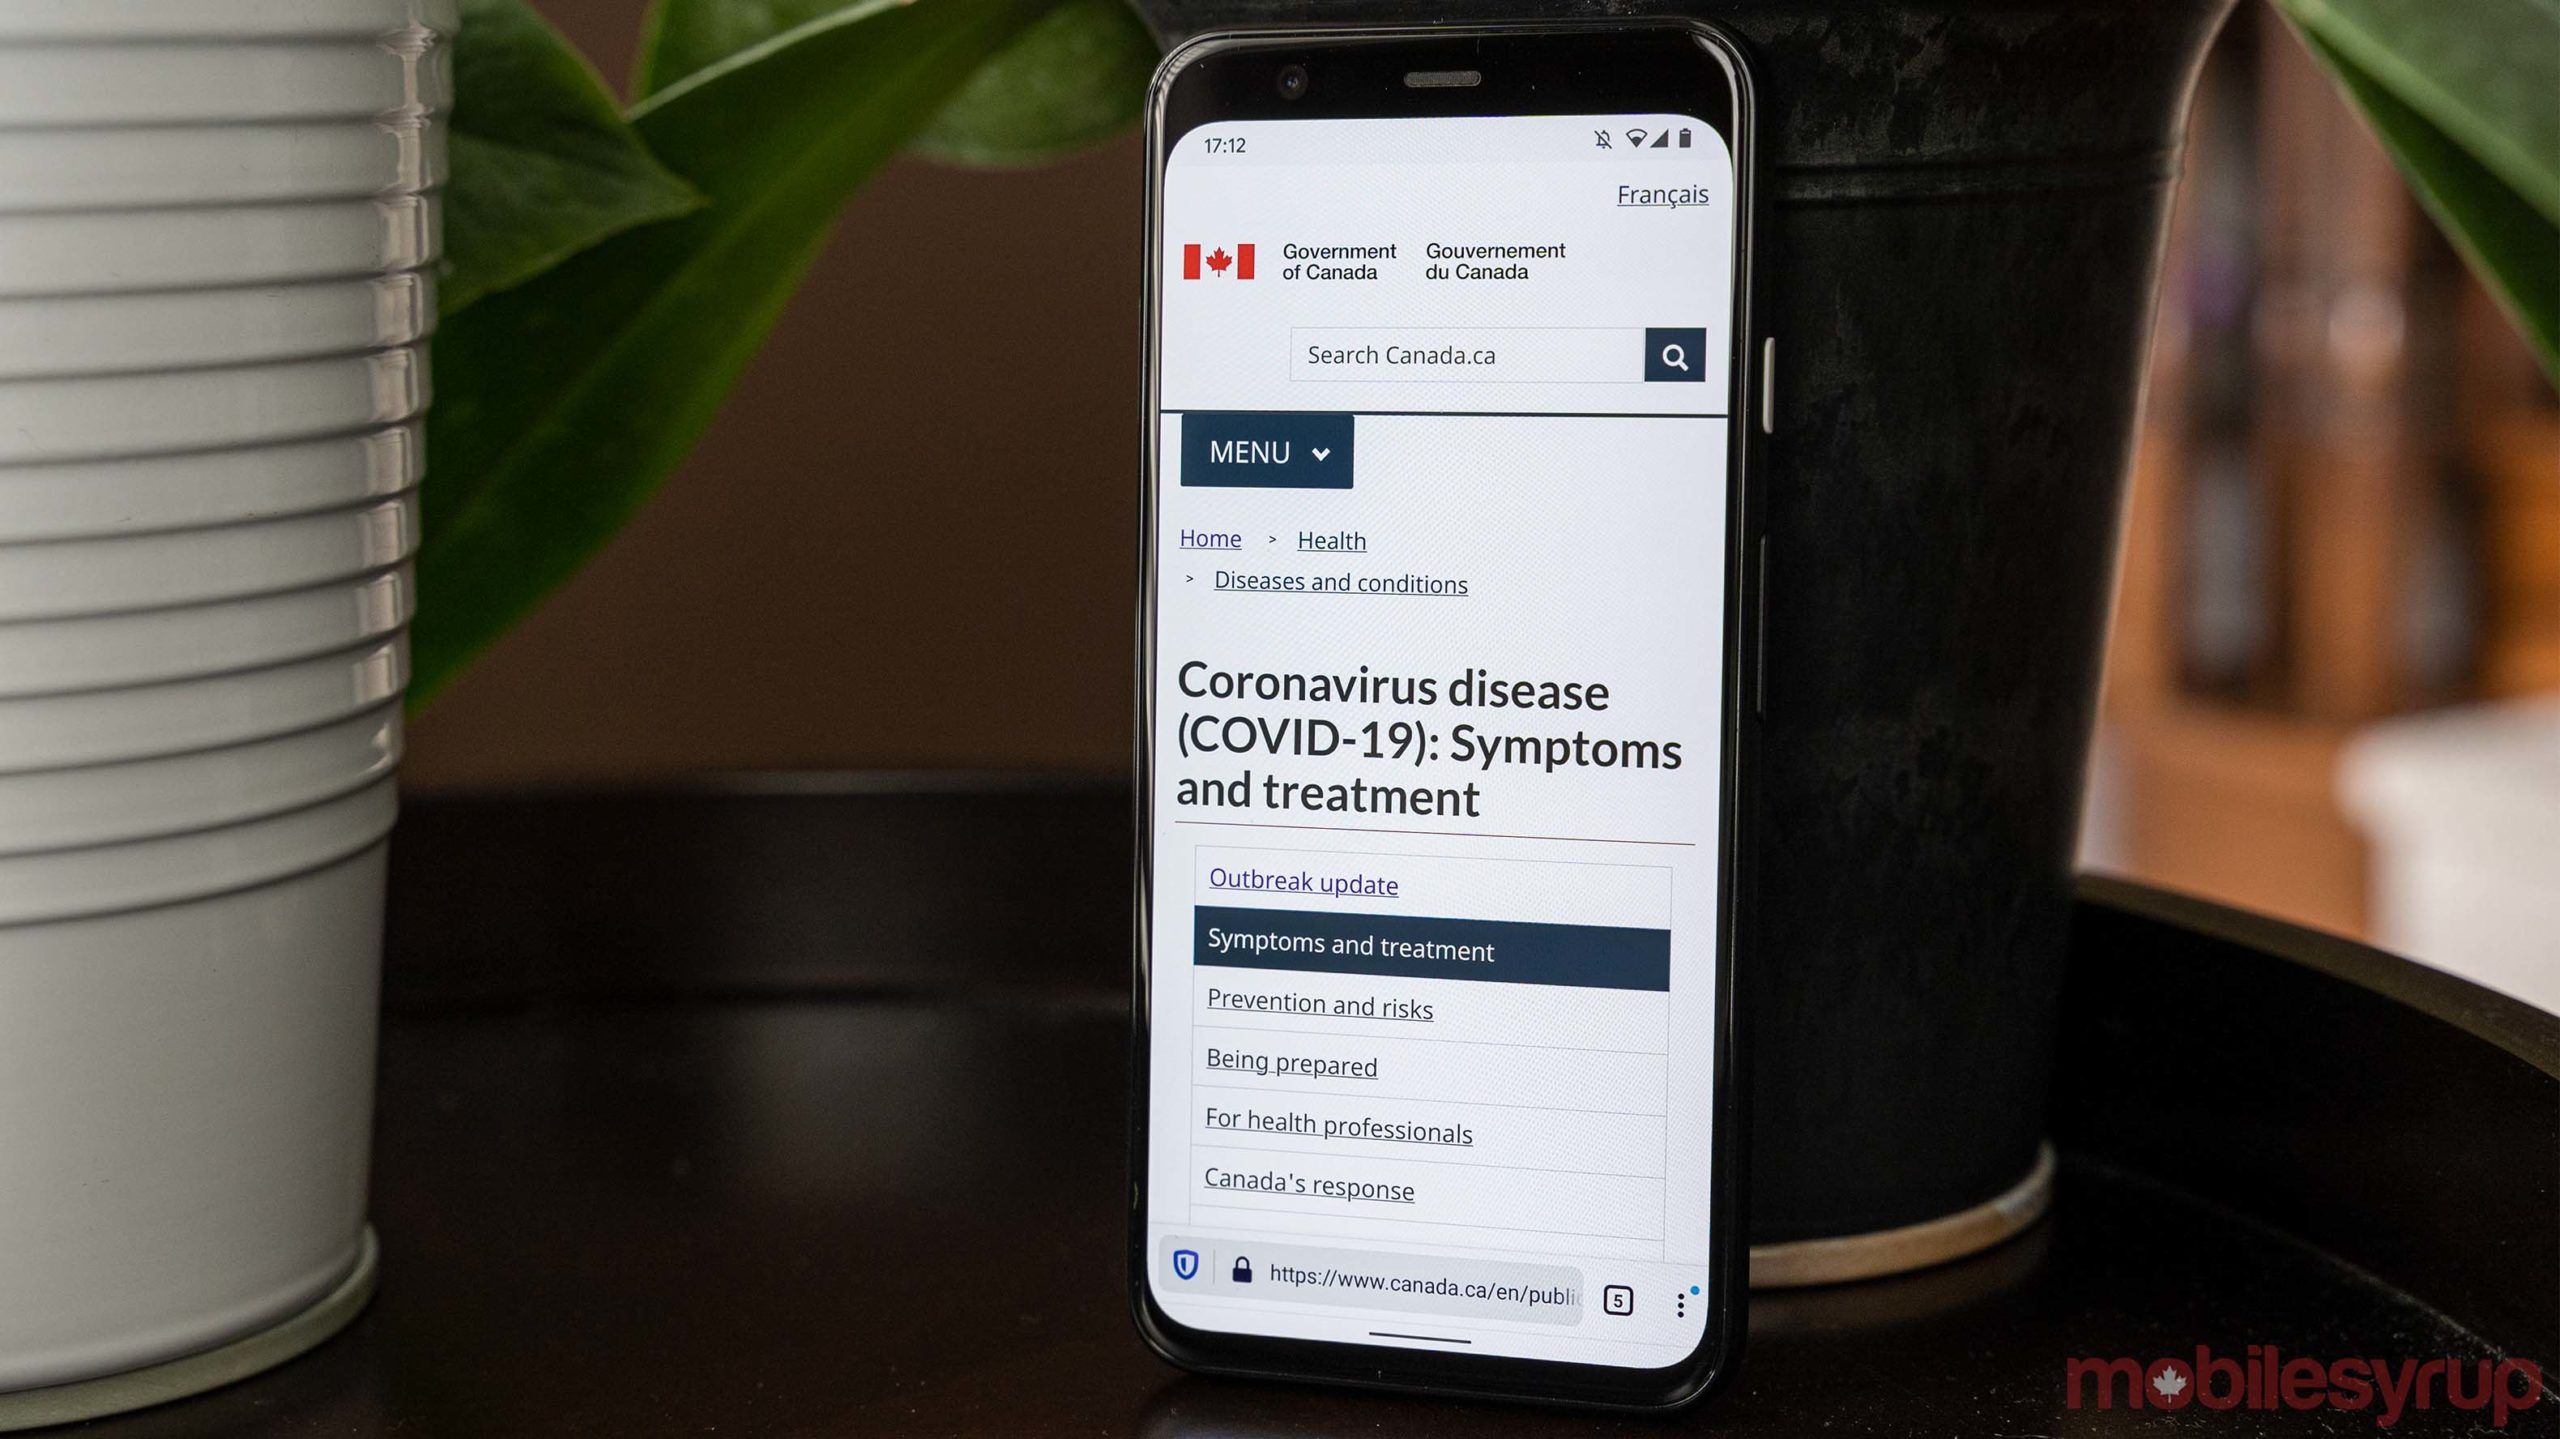 Canada's official COVID-19 resource website